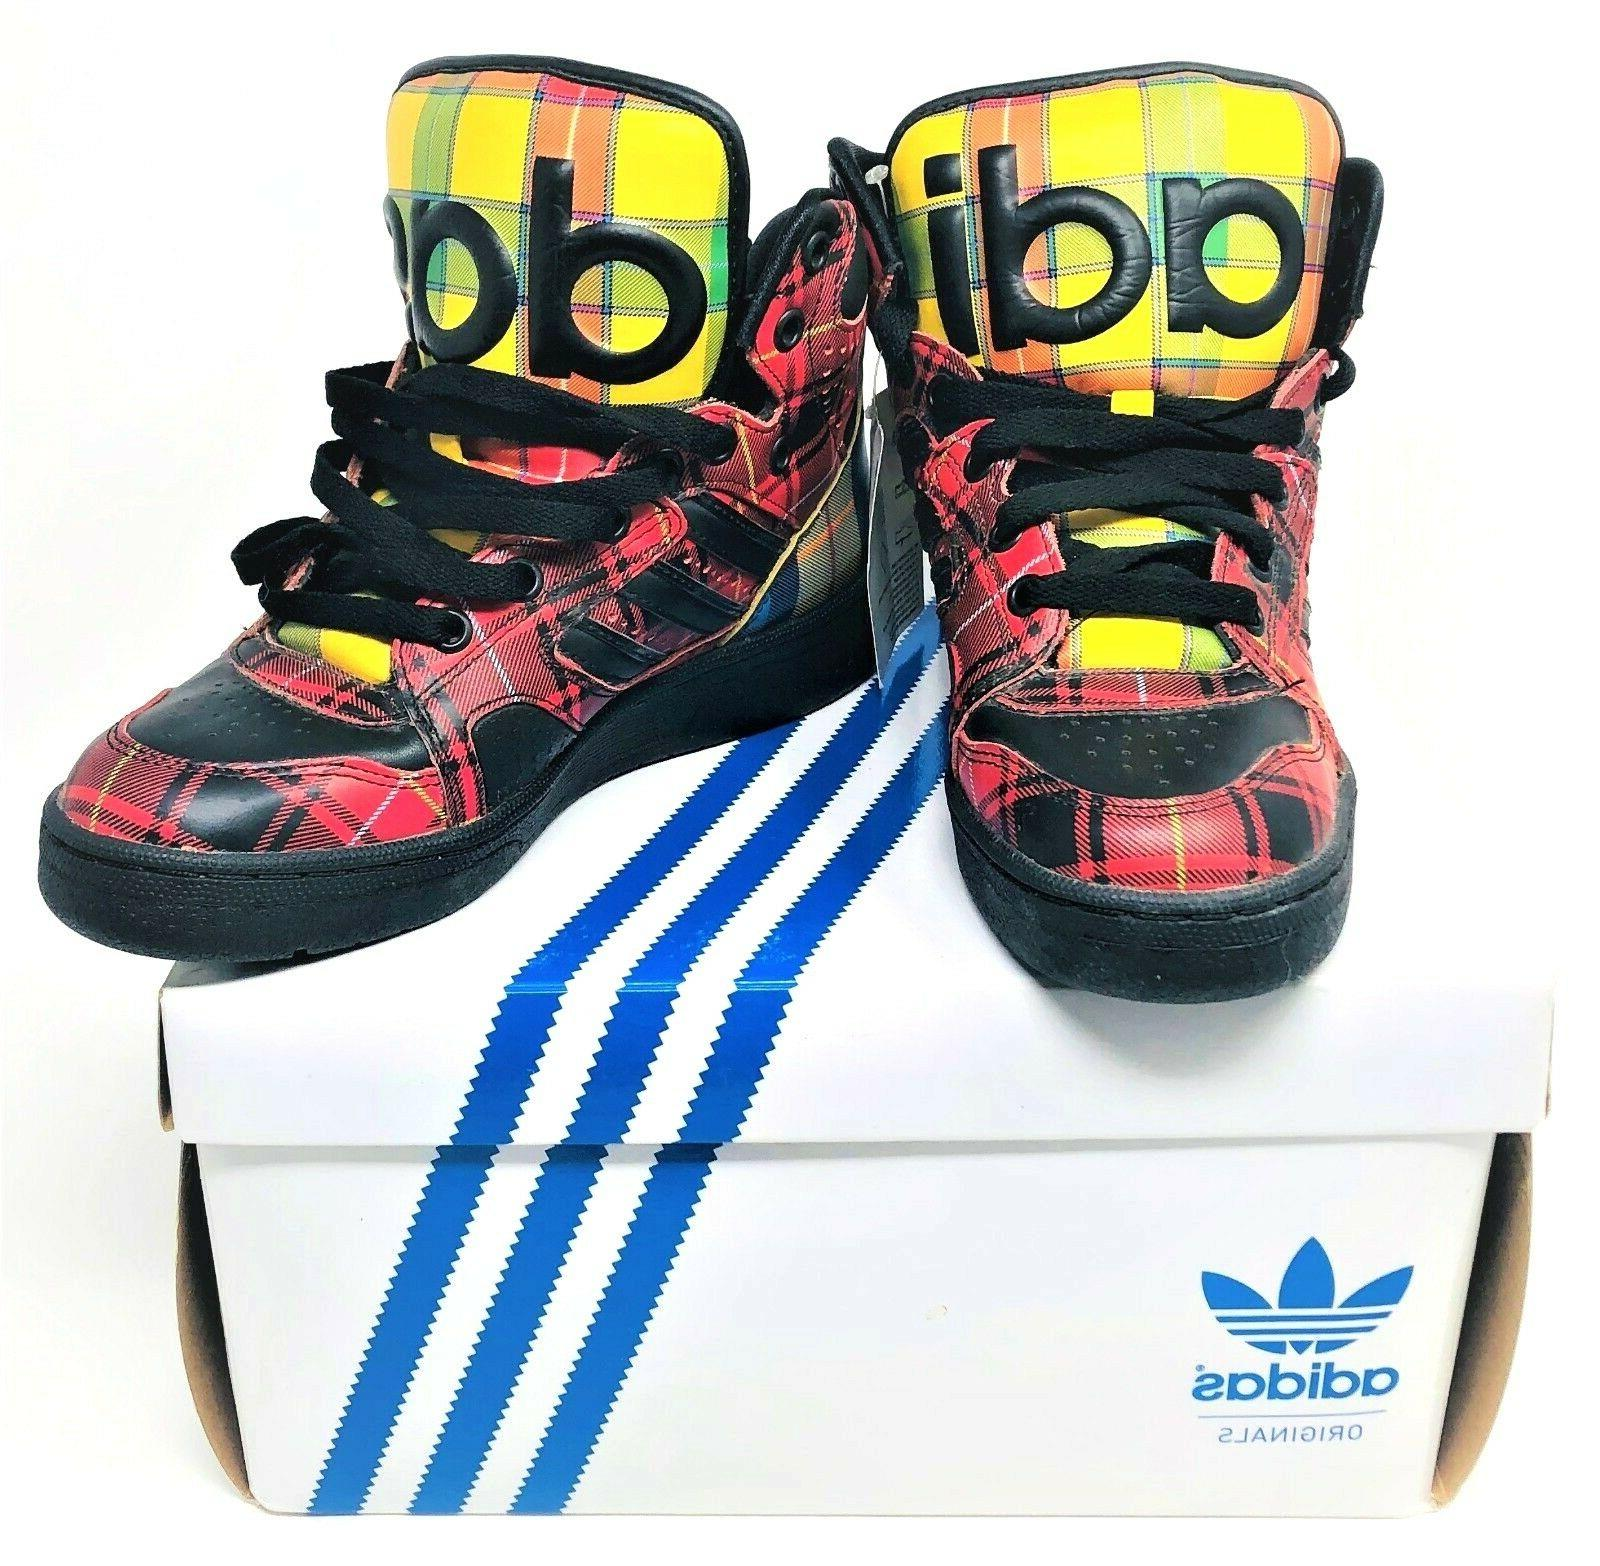 Adidas High Top Plaid Shoes Sneakers Size Mens